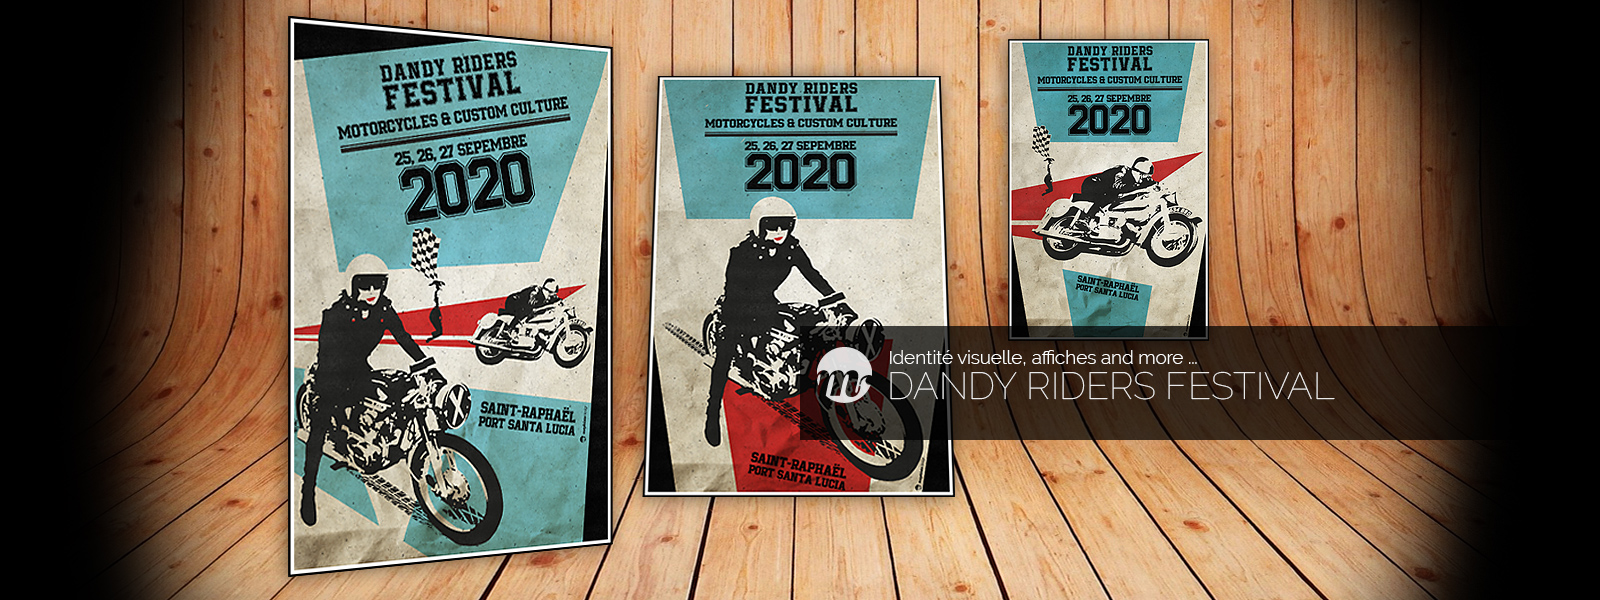 Dandy Riders Festival 2020